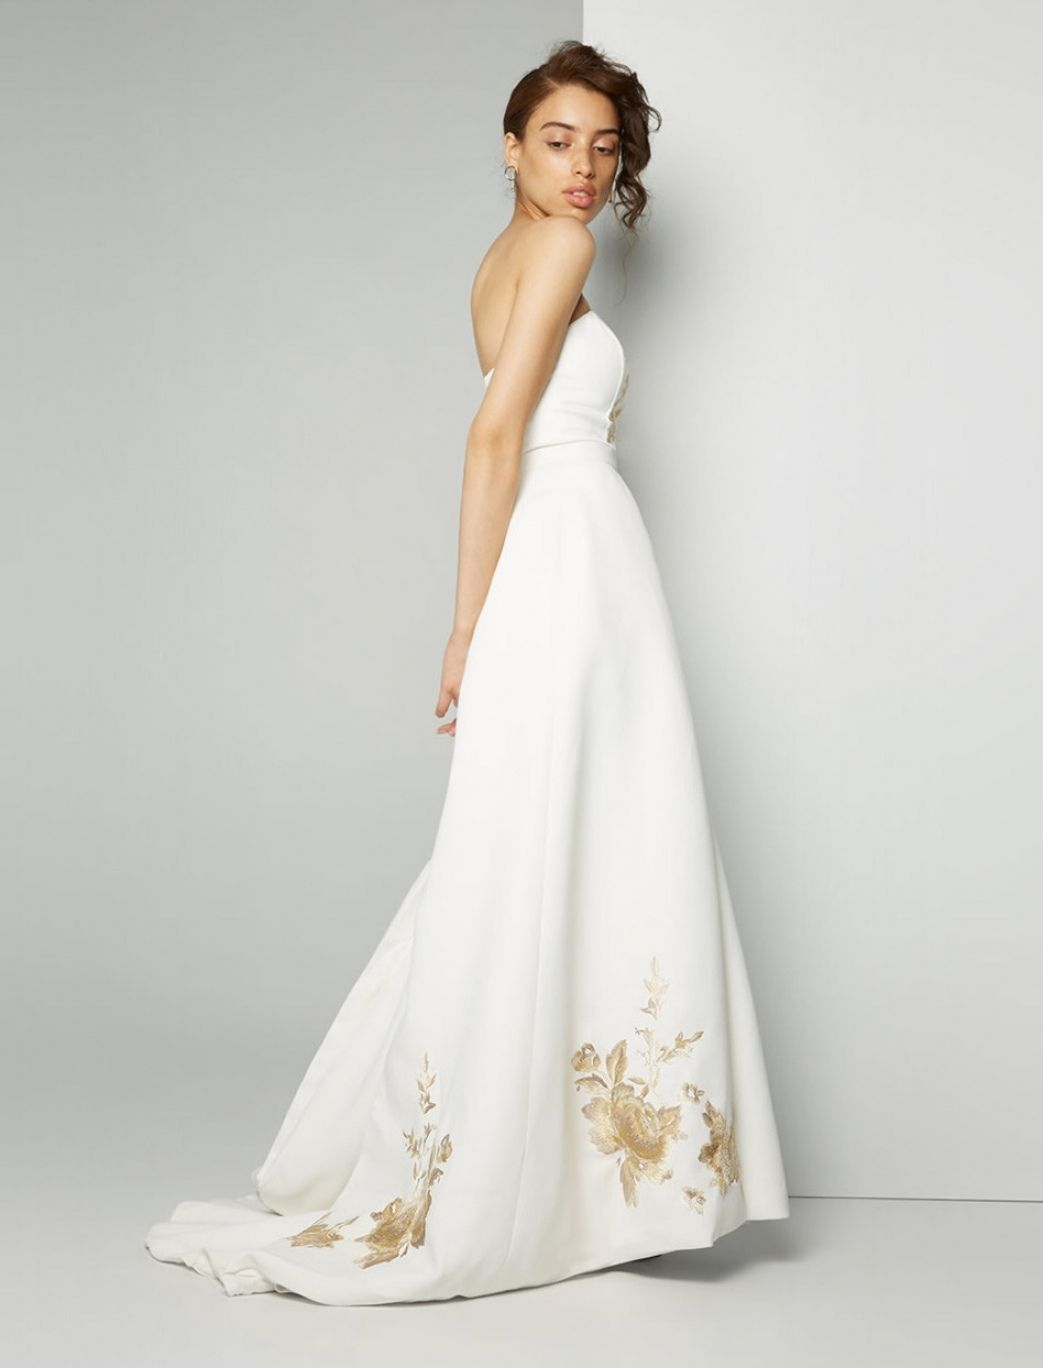 50+ where to Buy A Wedding Dress - Wedding Dresses for Fall Check ...